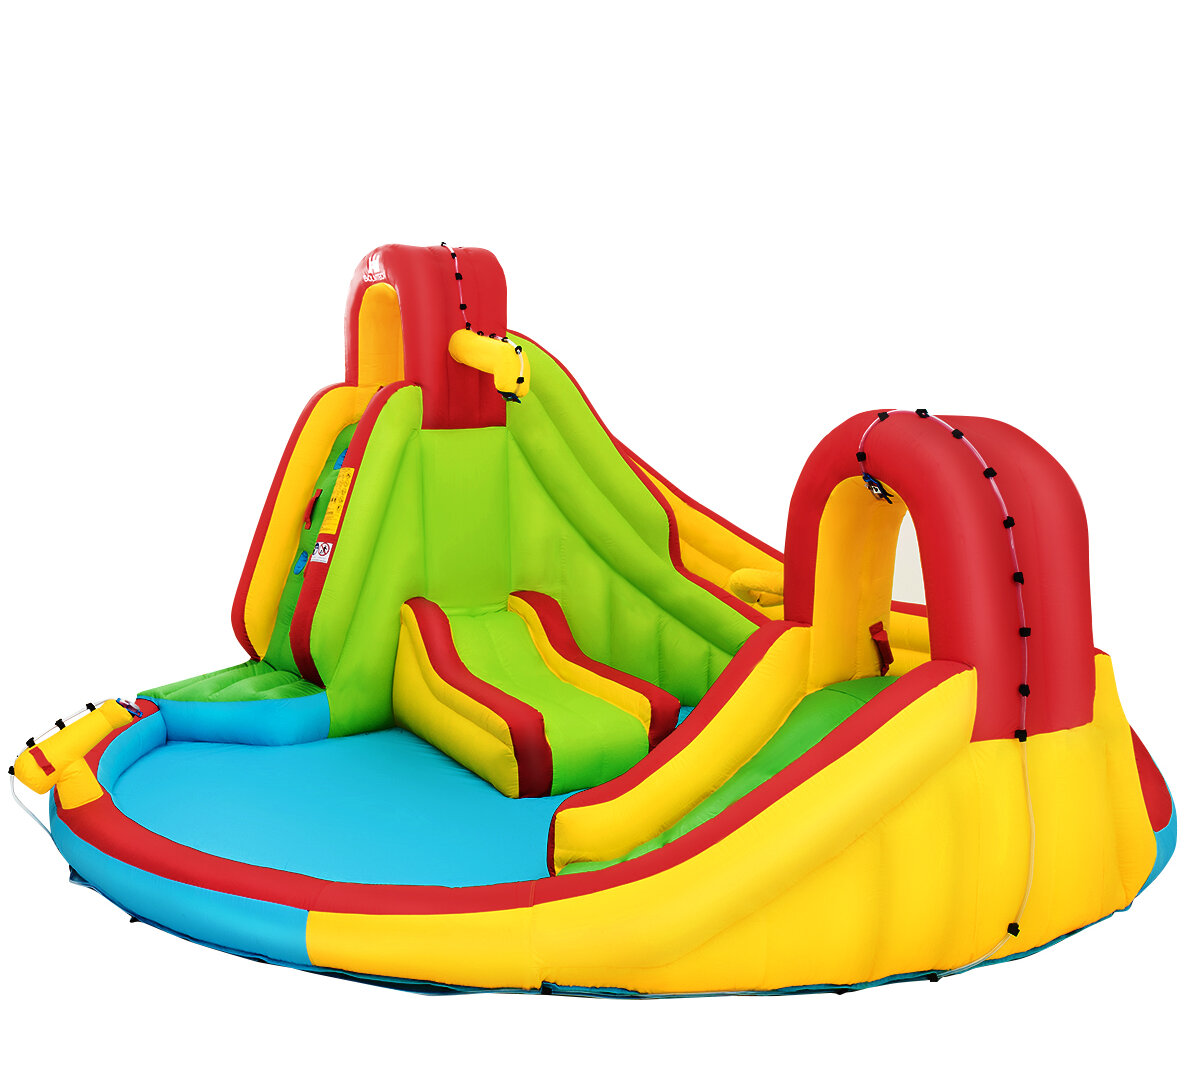 Costway 13 8 X 15 7 Bounce House With Water Slide Reviews Wayfair